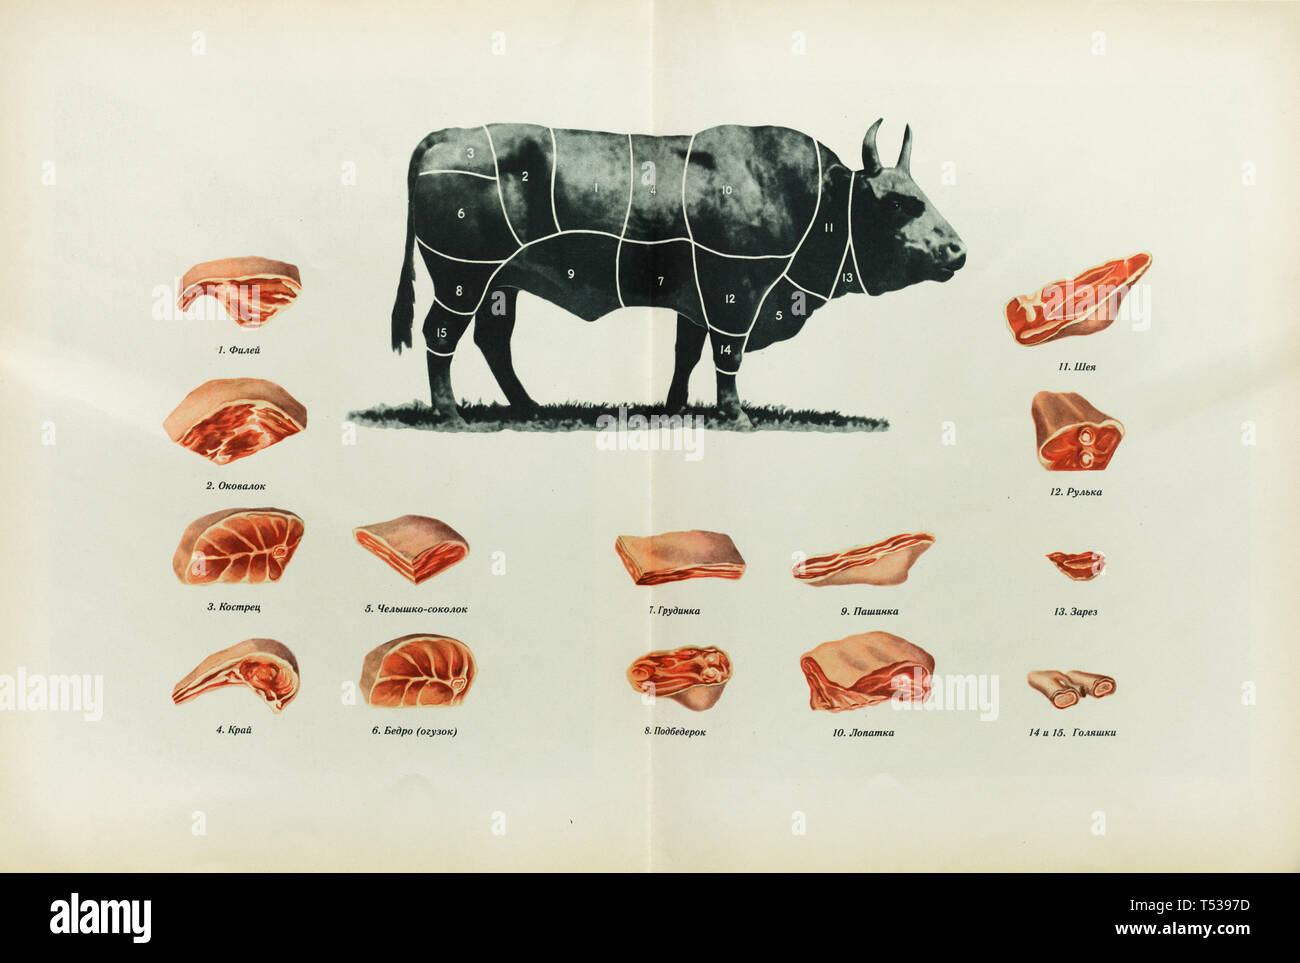 Russian beef cuts depicted in the colour illustration in the Book of Tasty and Healthy Food published in the Soviet Union (1953). Index: 1 - thin edge or short filet (file in Russian); 2 - sirloin (okovalok); 3 - leg (kostrets); 4 - thick edge or rib eye (kray); 5 - brisket (chelyshko sokolok); 6 - rump or hip (bedro or oguzok); 7 - brisket (grudinka); 8 - rump or hip (podbedrok); 9 - flank (pashinka or pashina); 10 - shoulder (lopatka); 11 - neck (sheya); 12 - hock or hough (rulka); 13 - first cut (zarez); 14 and 15 - shank (golyashka). Stock Photo